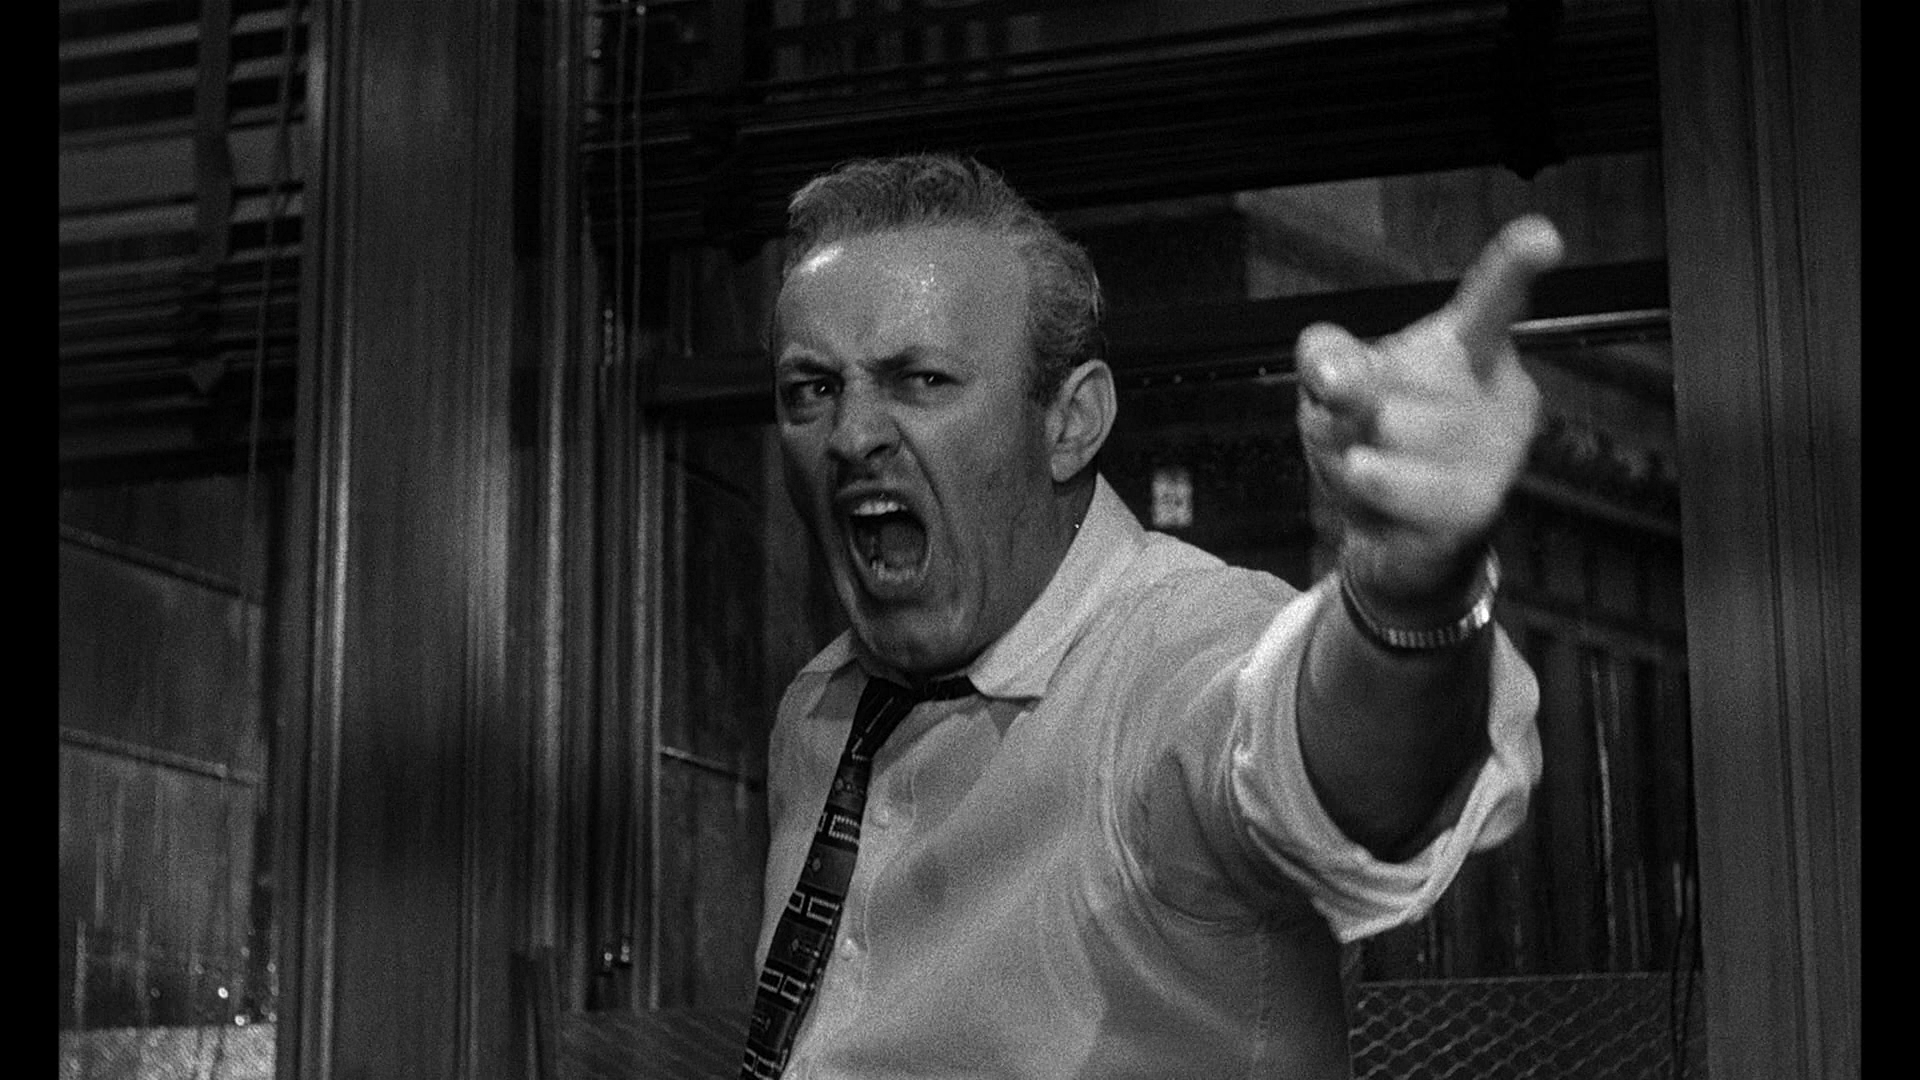 https://i2.wp.com/blog.perspectivesjournal.org/wp-content/uploads/sites/2/2014/10/12_angry_men_lee_j_cobb_bellowing1.png